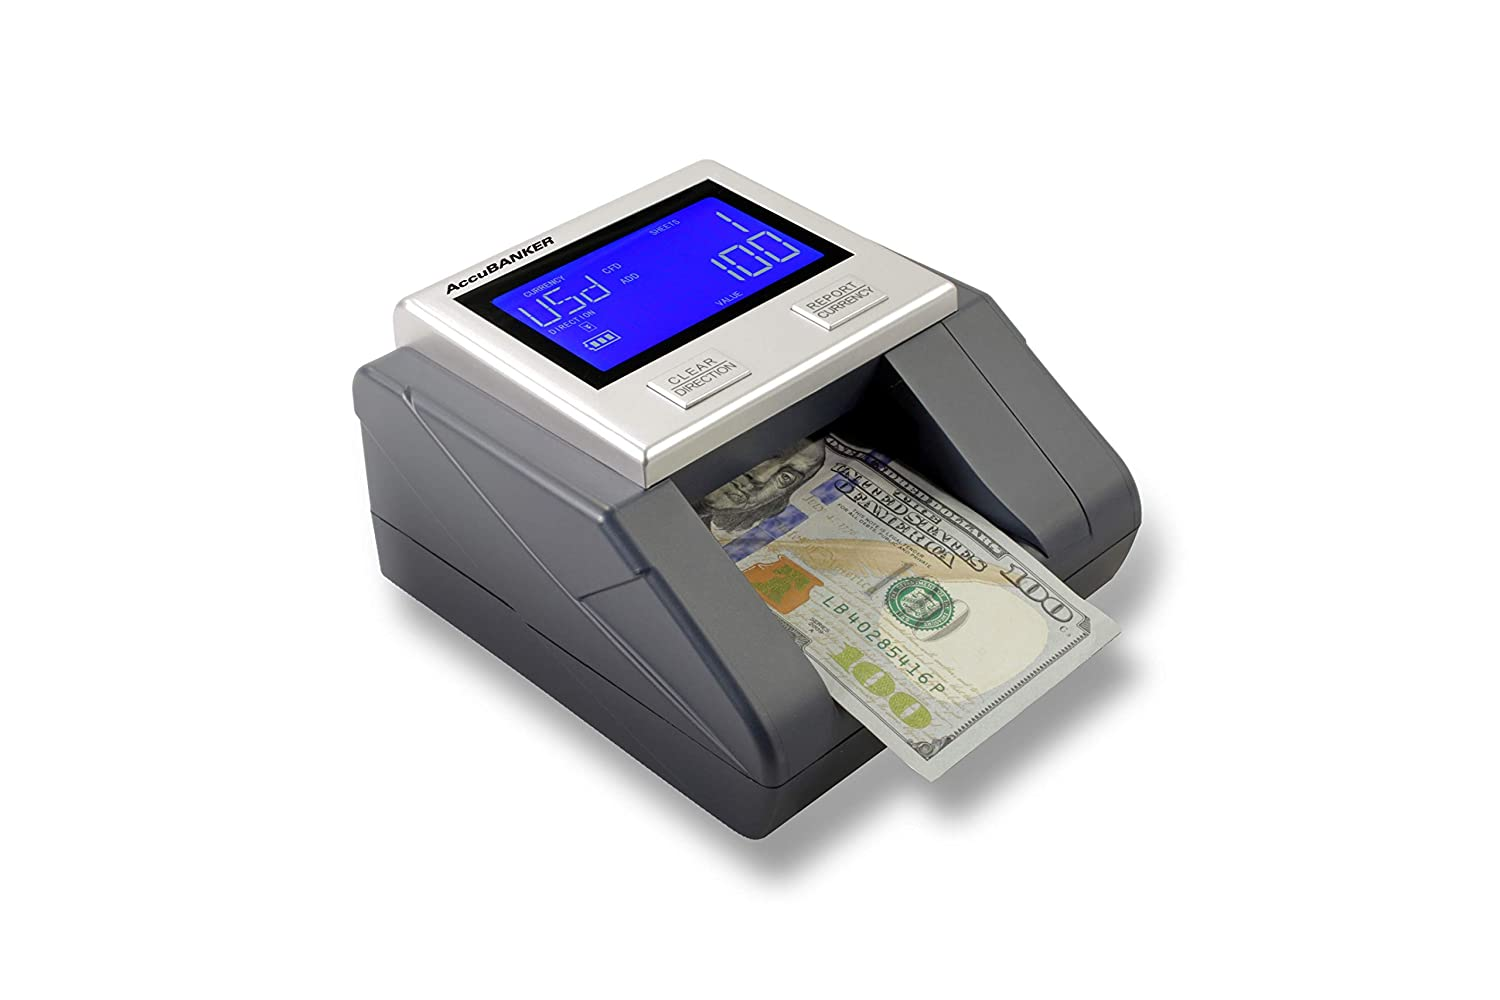 Multi-Orientation Feeding System Visual and Audible Alerts Banknote Verification AccuBANKER D585 Multi-Scanix Counterfeit Currency Detector USD, EUR, GBP Multi-Currency Detection